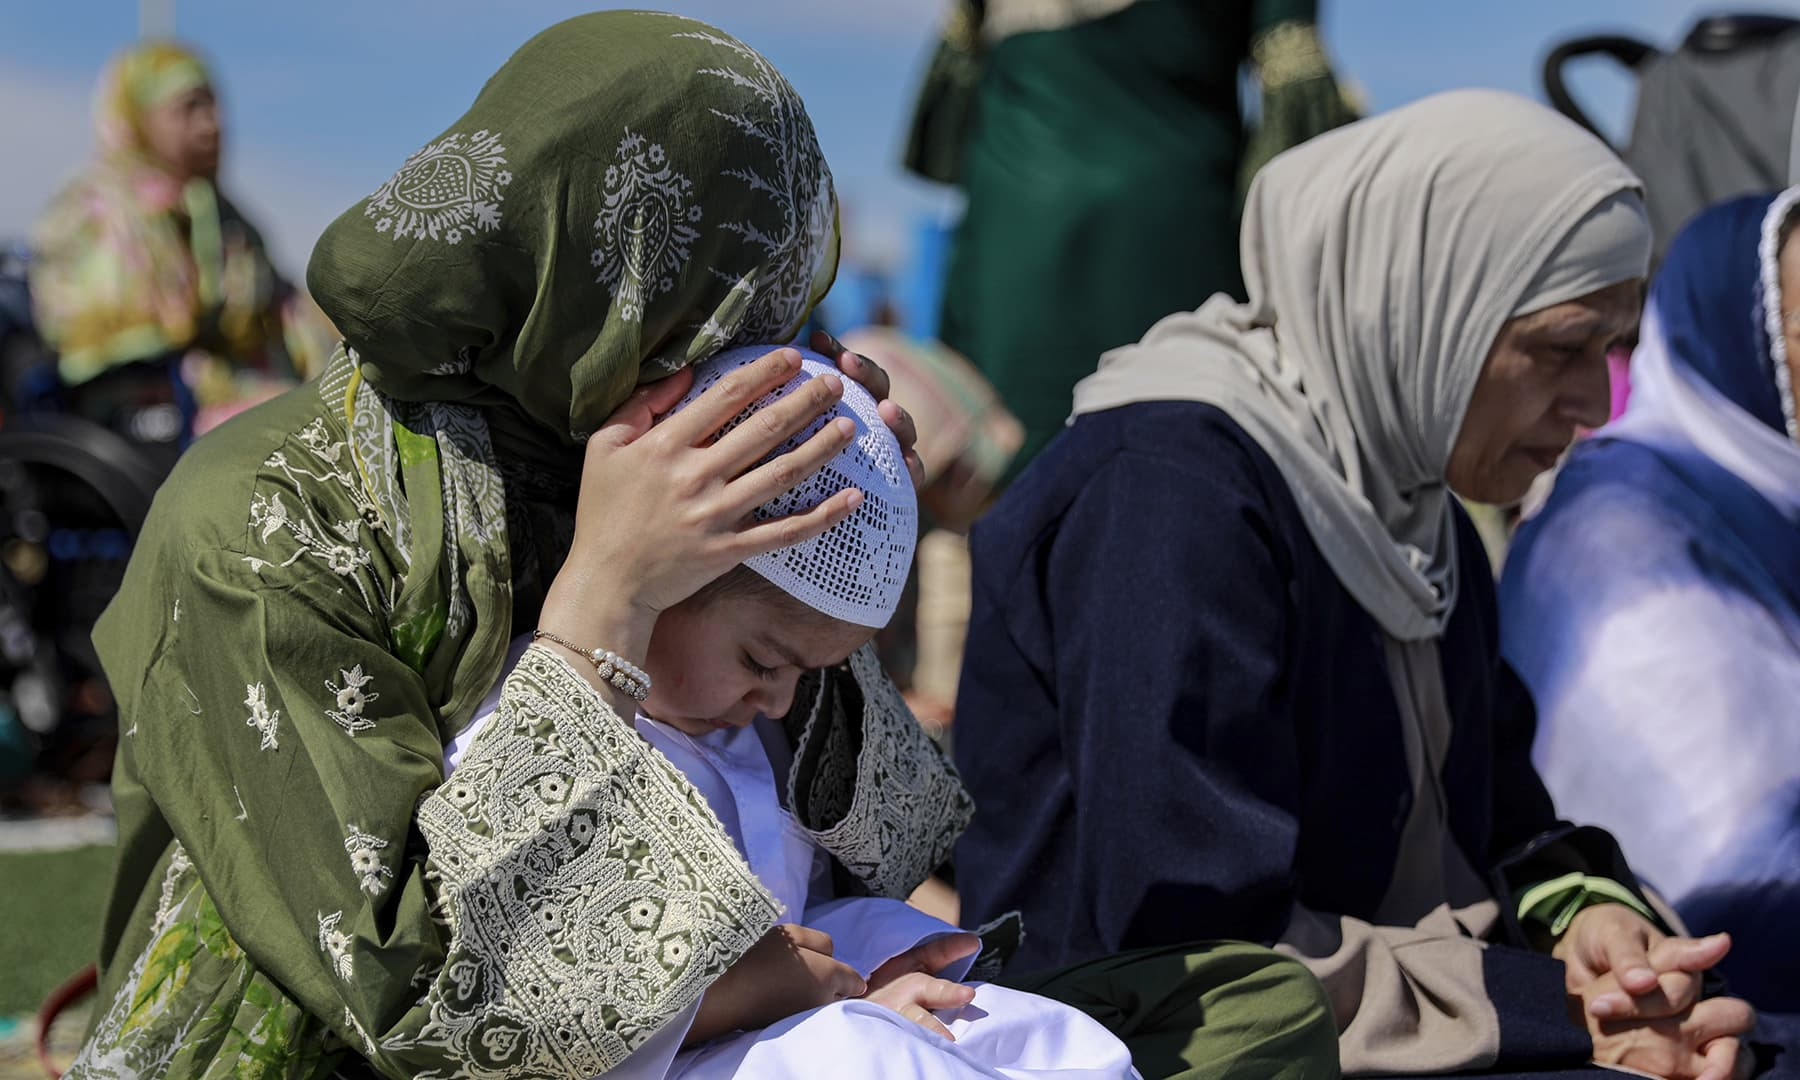 A woman rests her head on her son while holding him after performing Eidul Fitr prayers on the Niles West High School football field in Skokie, Ill, United States on Wednesday, June 5. — AP